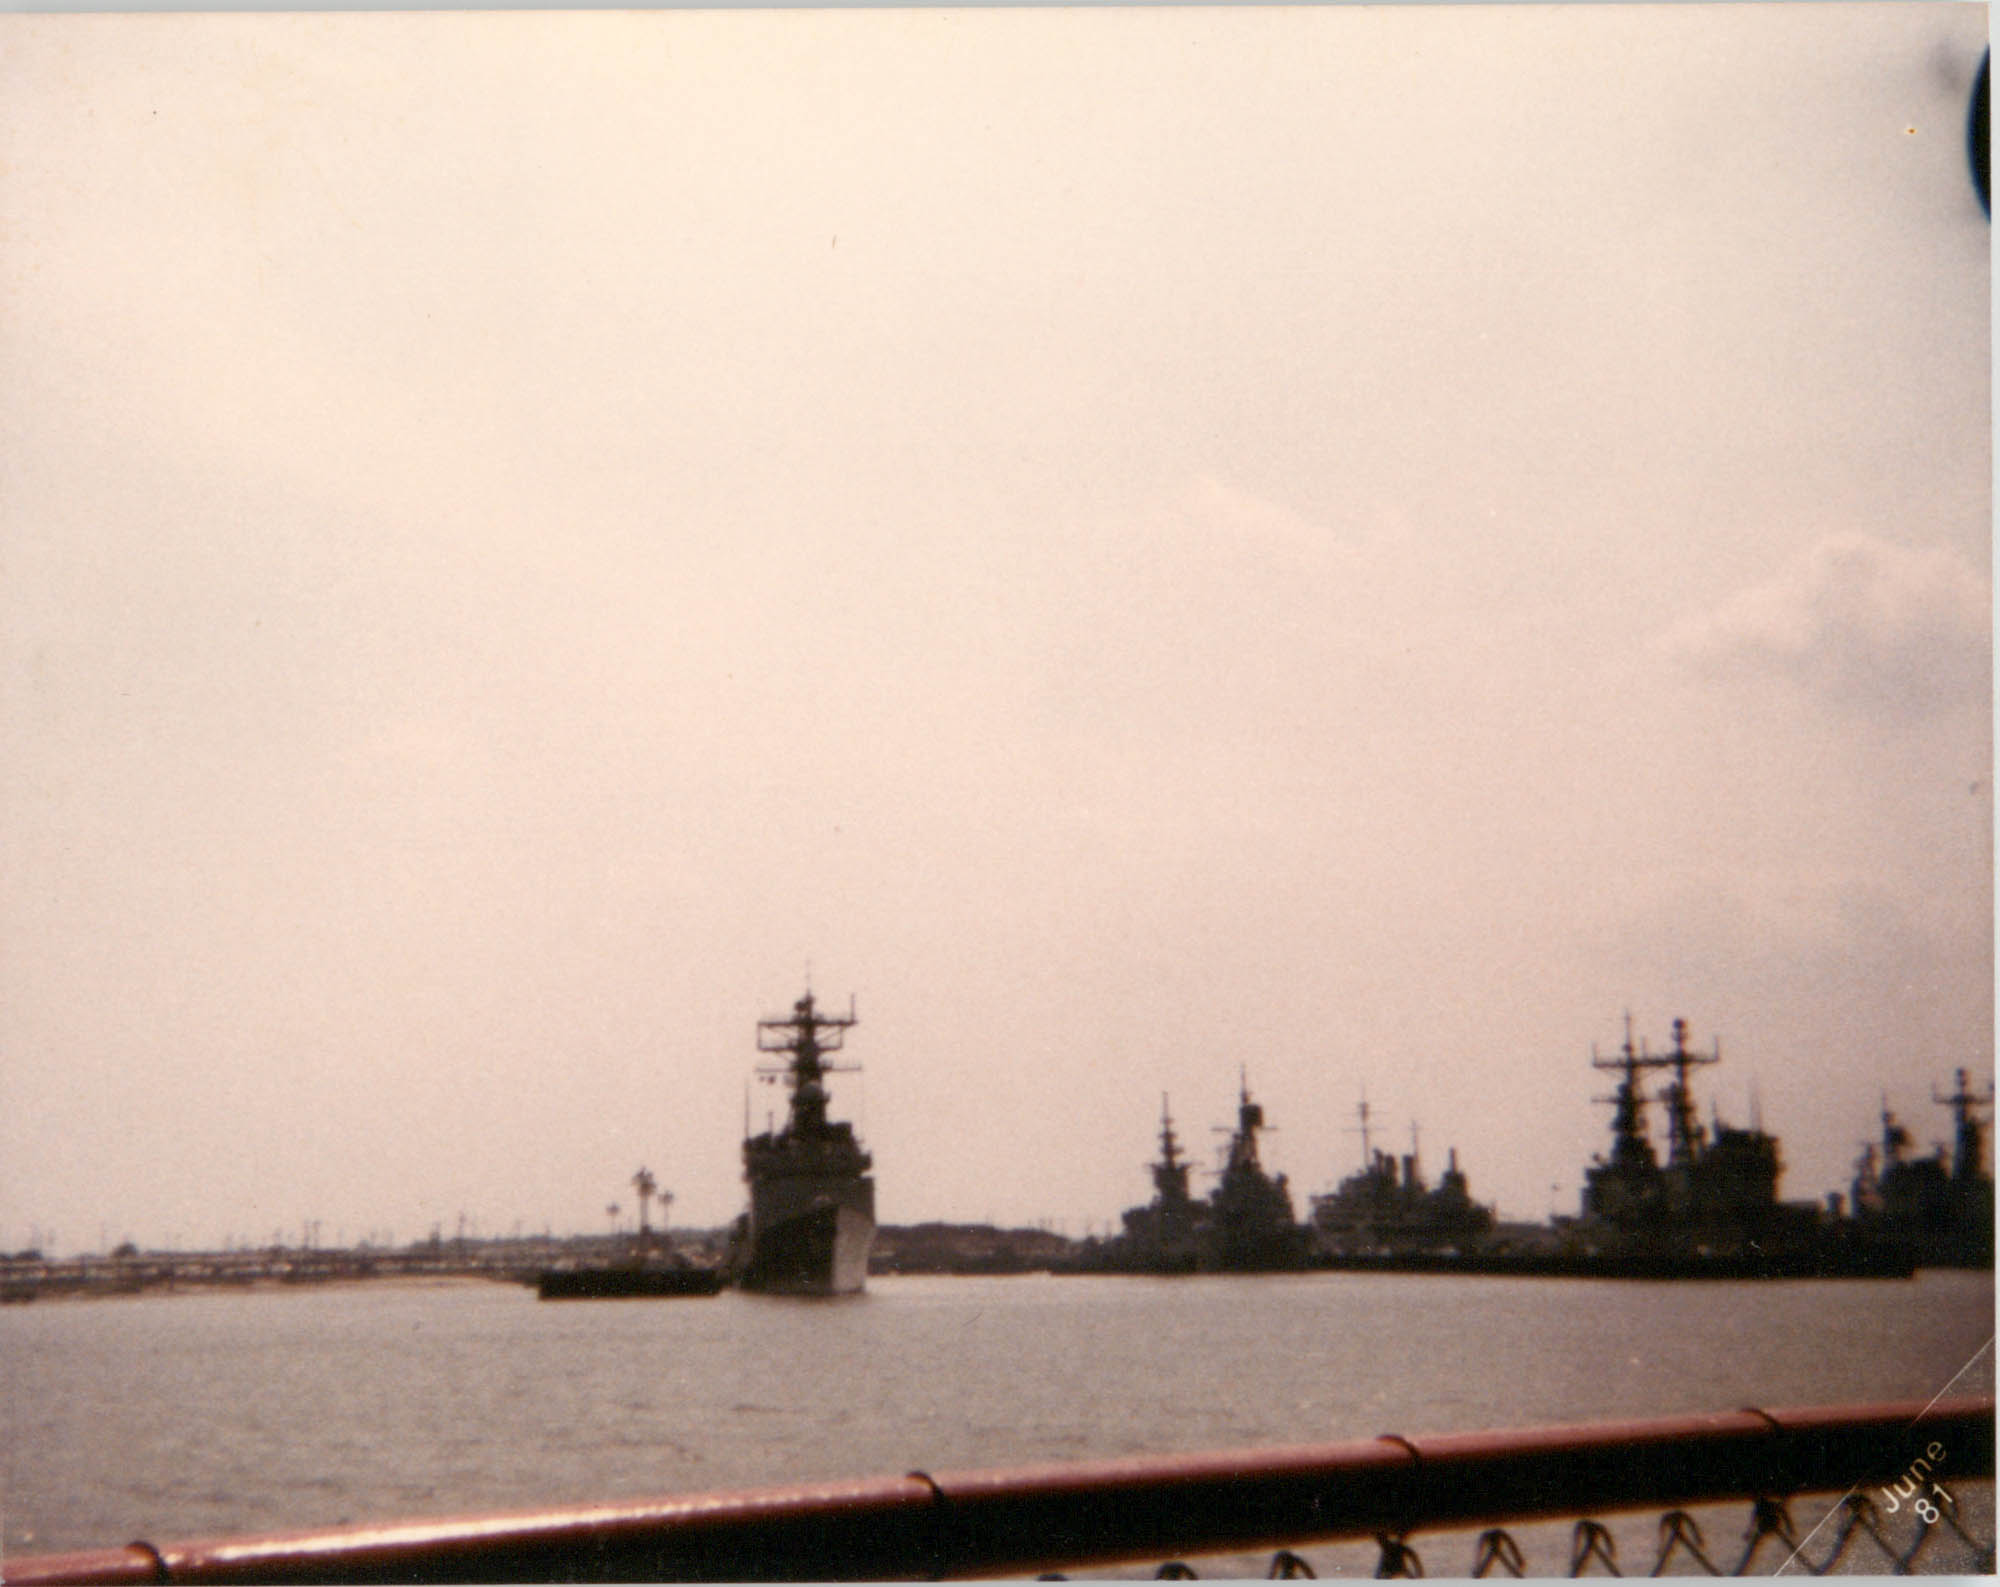 Photograph of Battle Ships